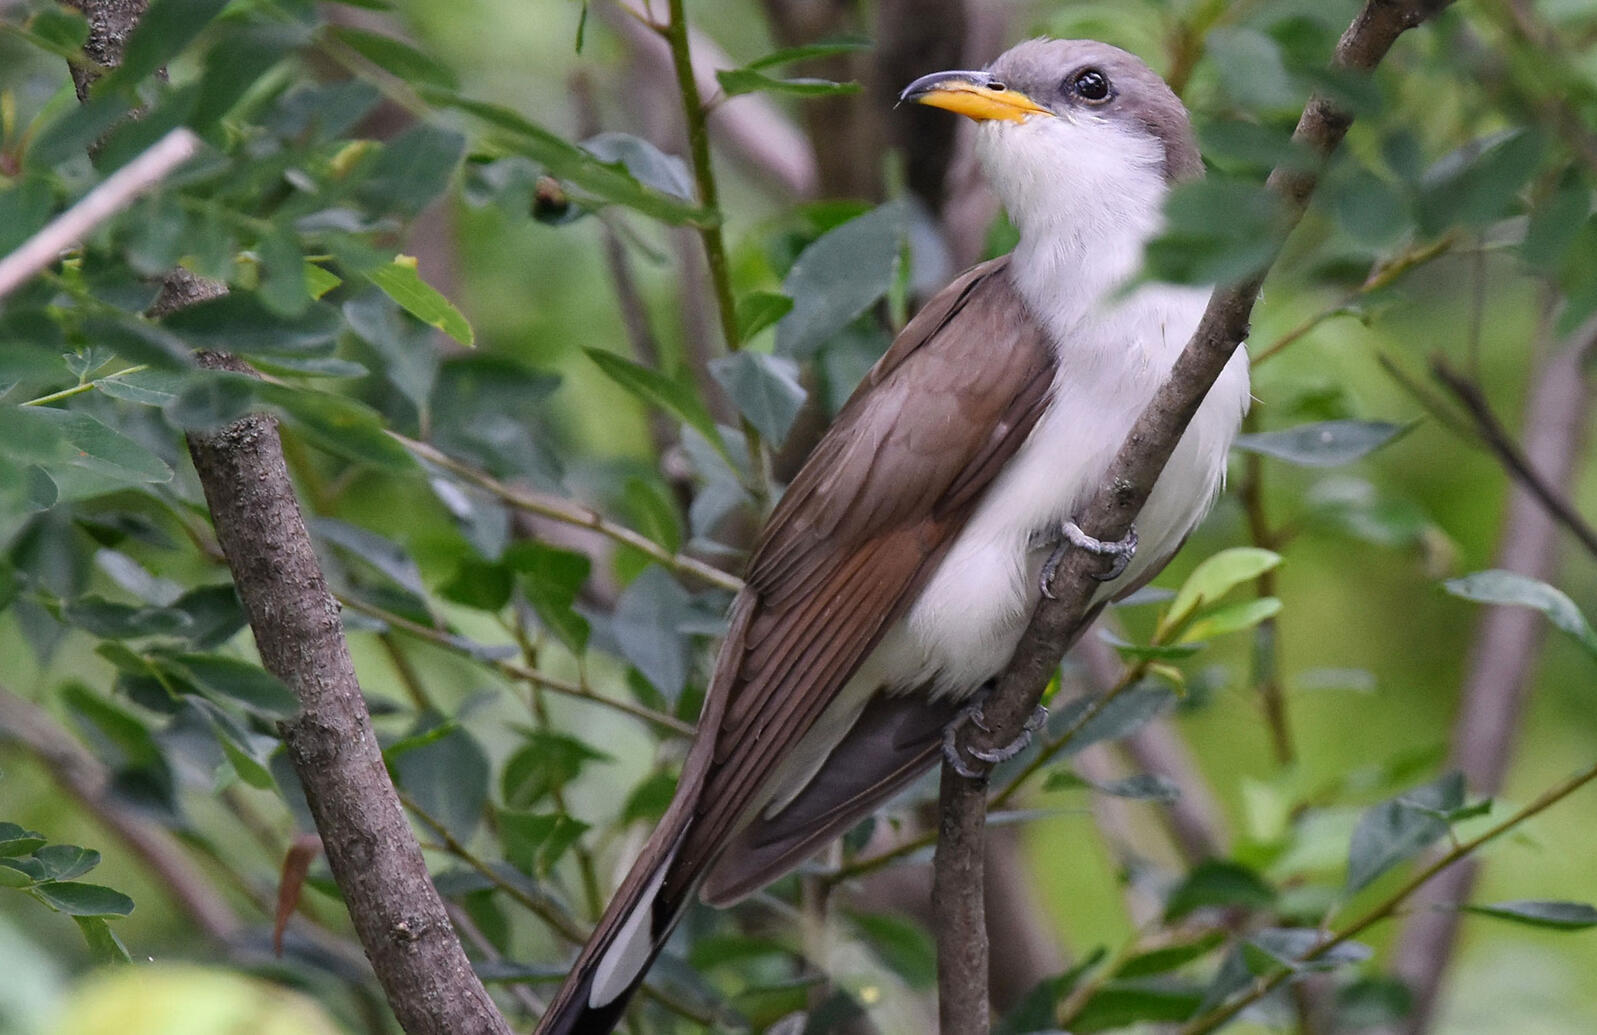 Yellow-billed Cuckoo. Andy Reago and Chrissy McClarren/Flickr (CC BY 2.0)